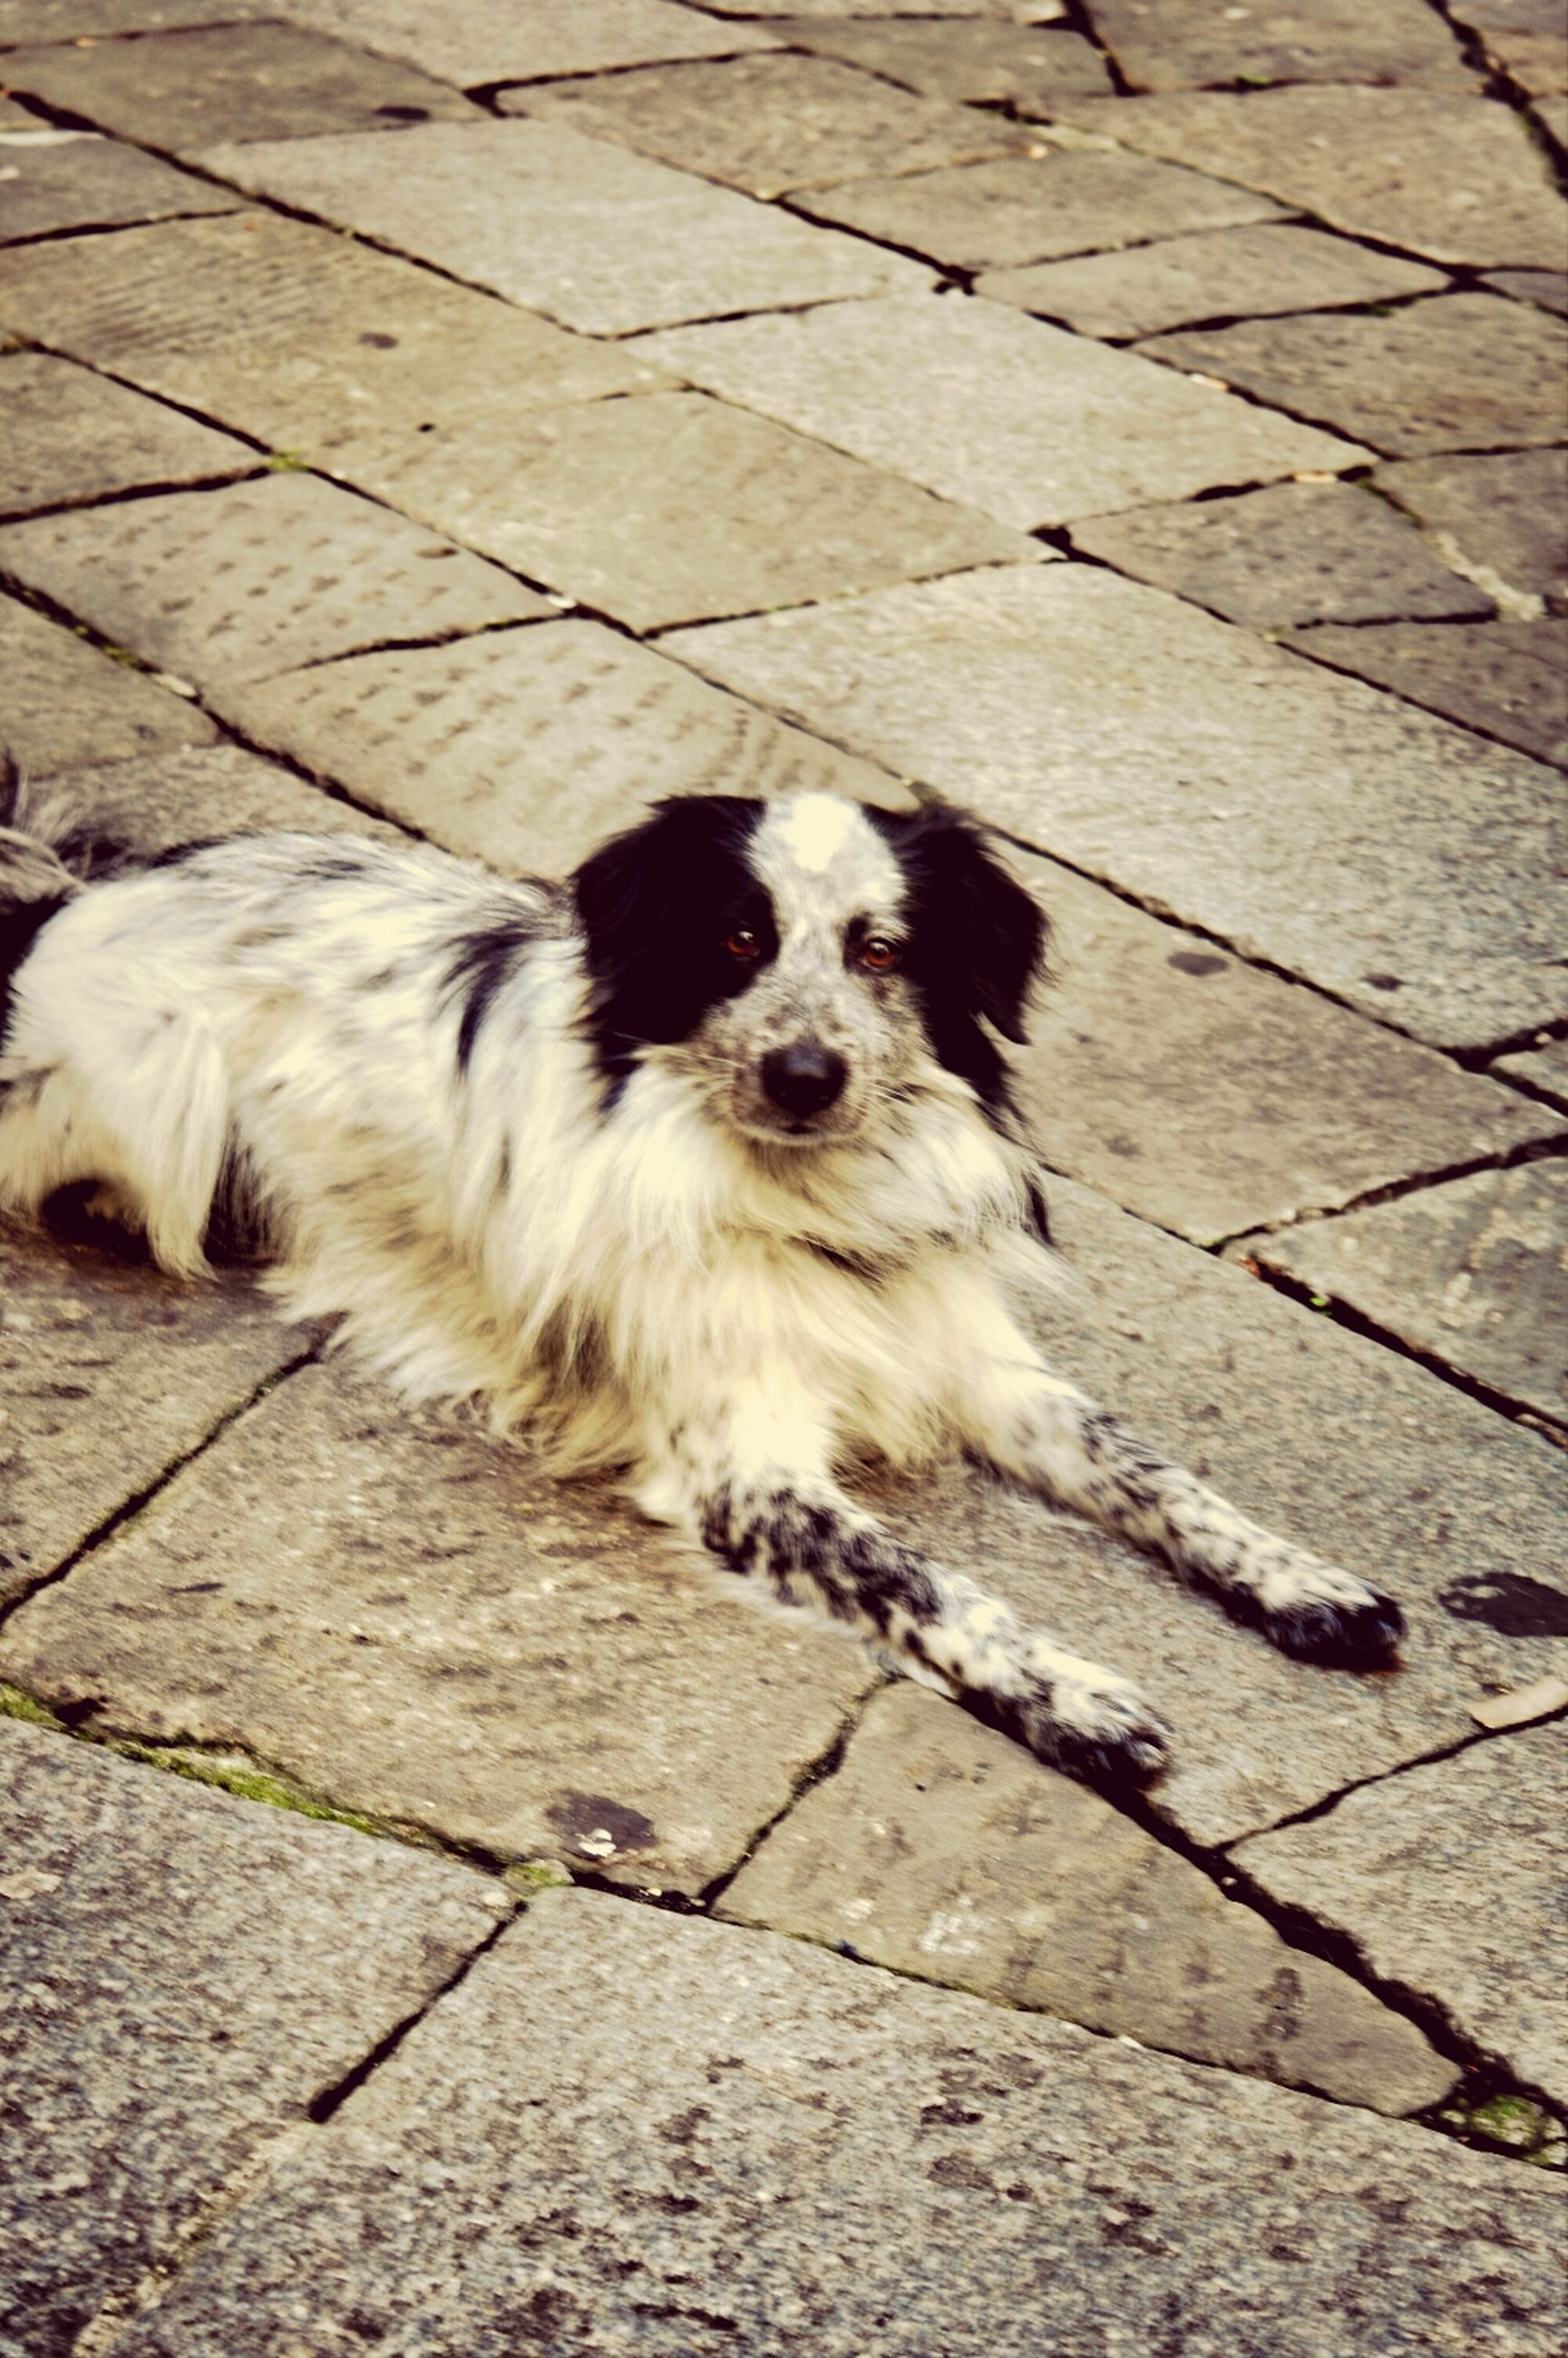 animal themes, one animal, domestic animals, mammal, pets, dog, high angle view, portrait, animal hair, looking at camera, zoology, animal head, white color, animal, no people, sitting, outdoors, full length, street, relaxation